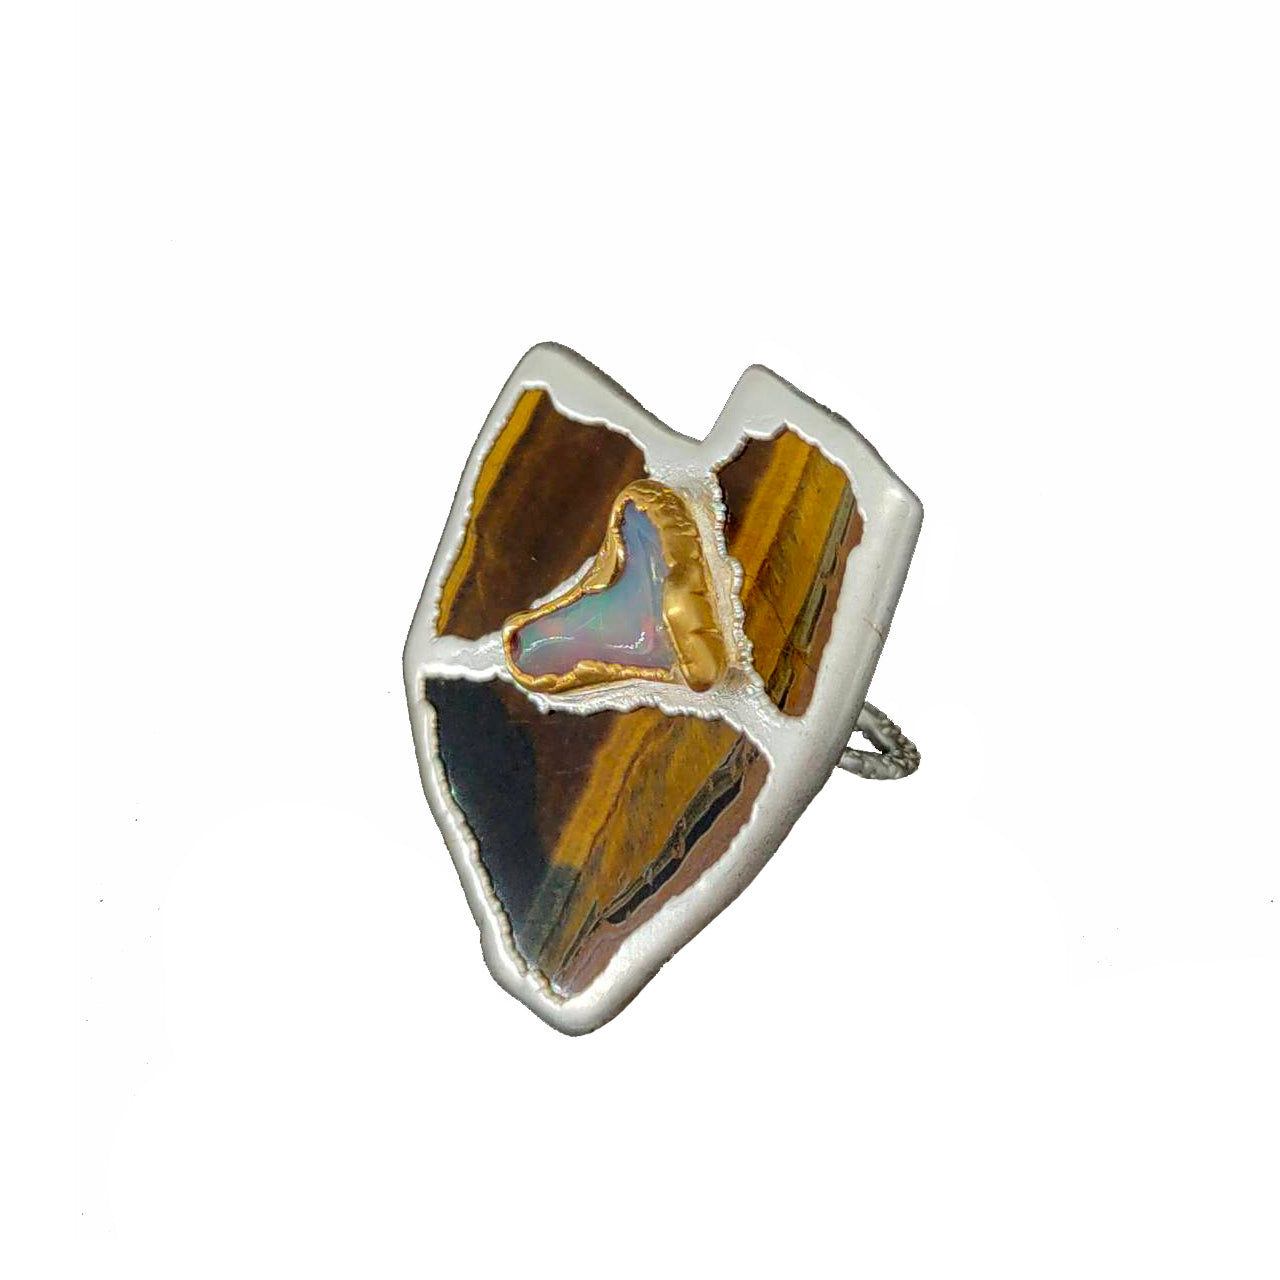 Electro Forming - 925 Sterling Silver Ring, Decorated with Golden Tiger Eye and Curved Ethiopian Opal, Plated with 3 Micron 22K Yellow Gold and Silver